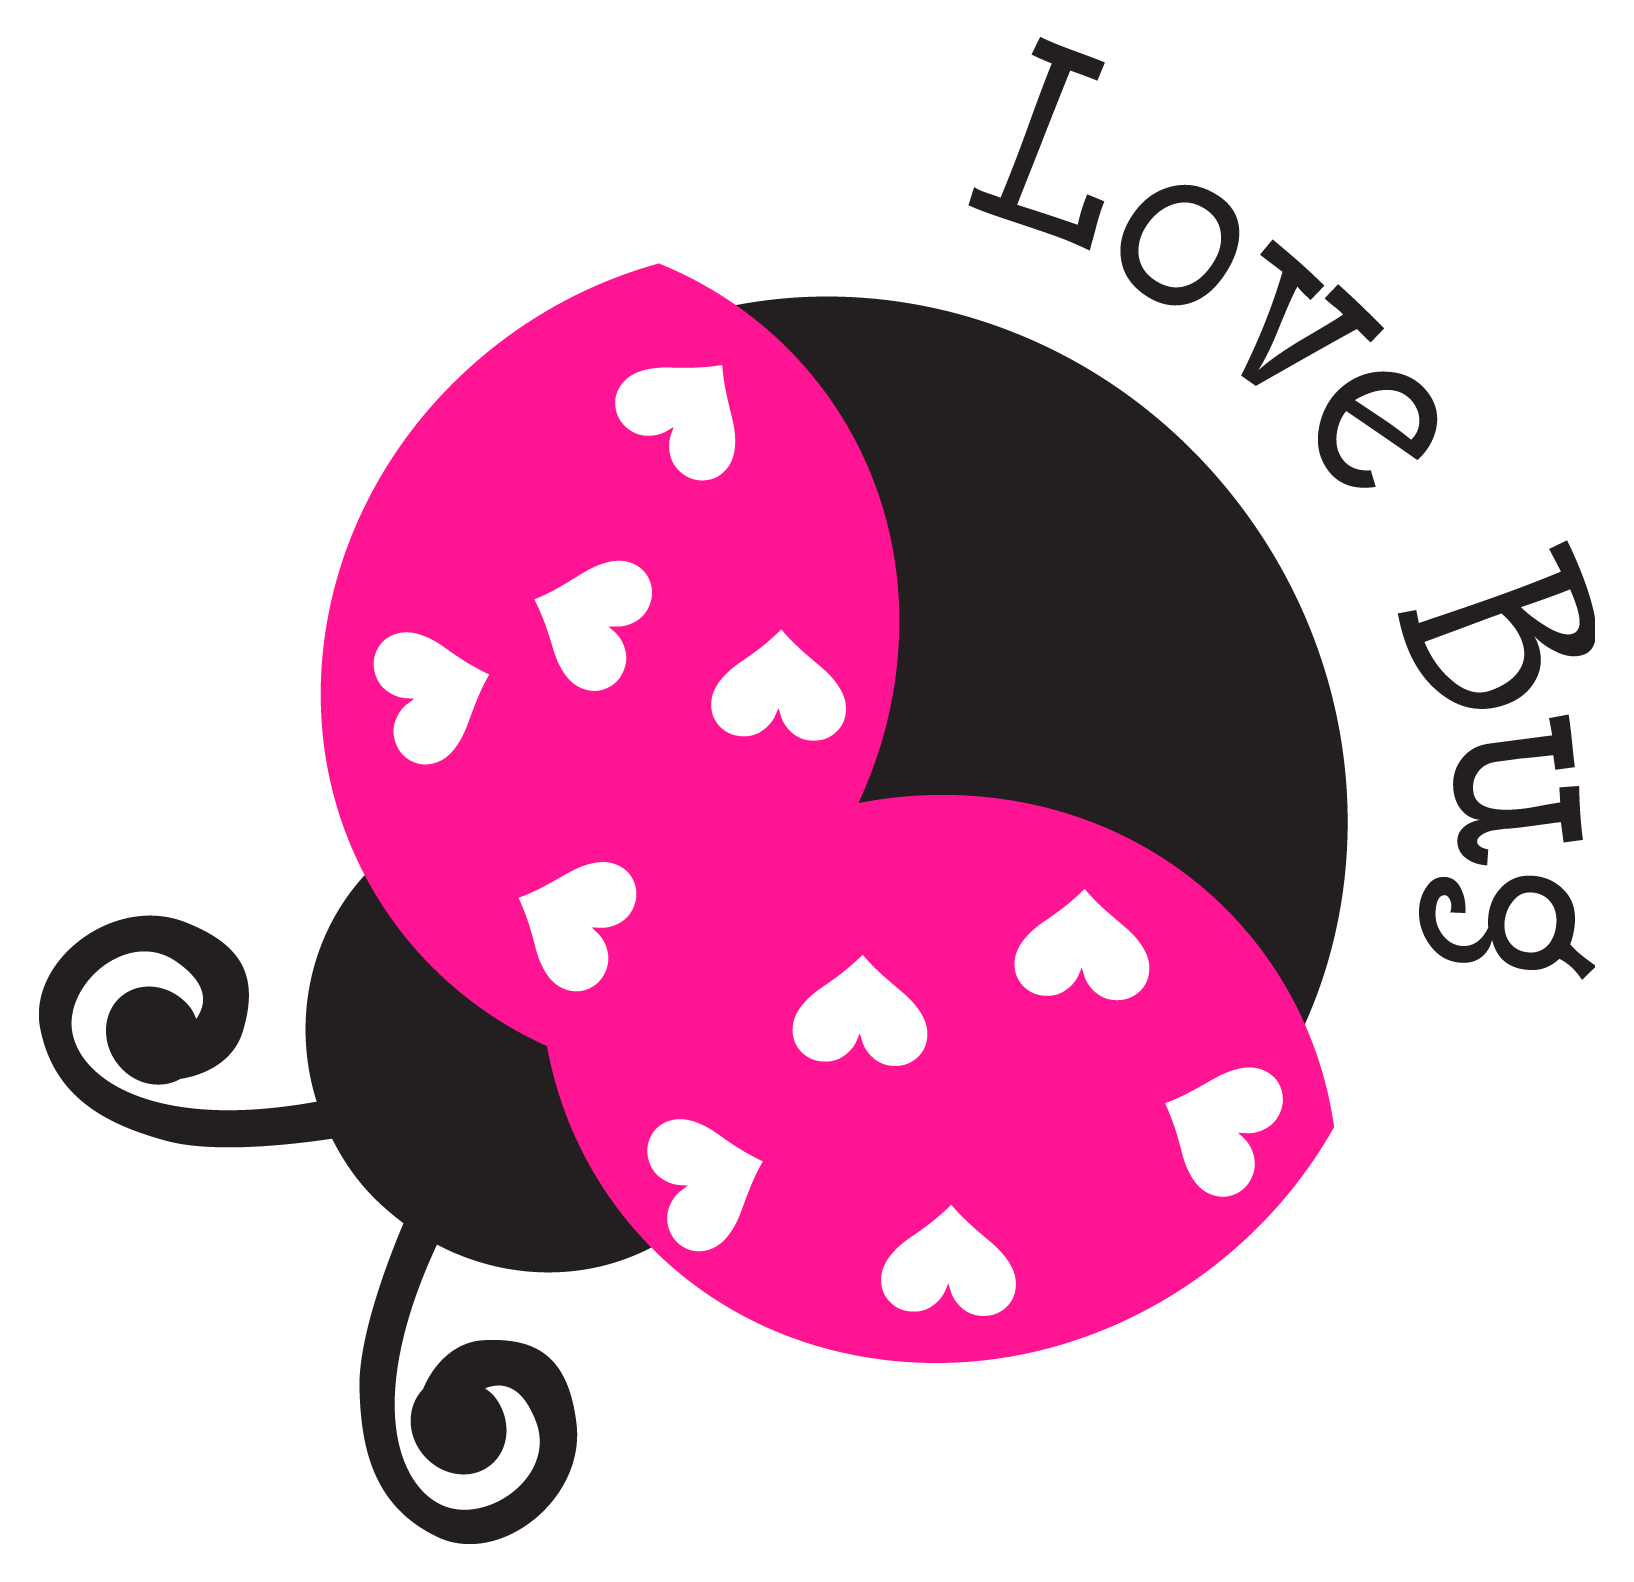 png library download Love clipart ladybug. Bugs png minus x.